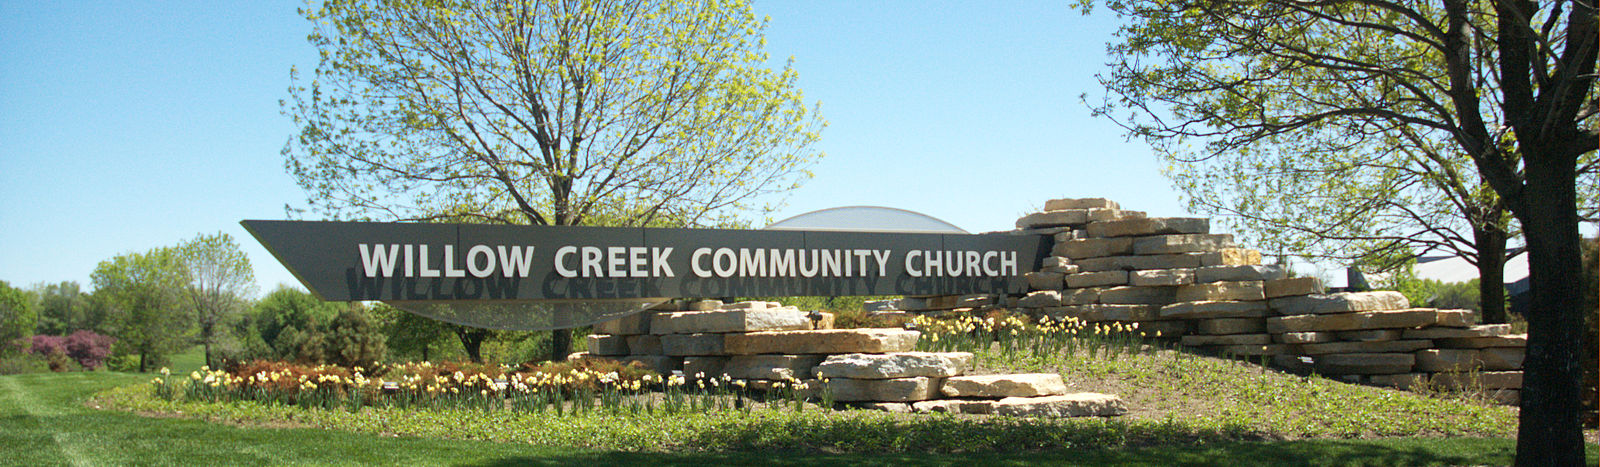 Willow Creek Community Church sign